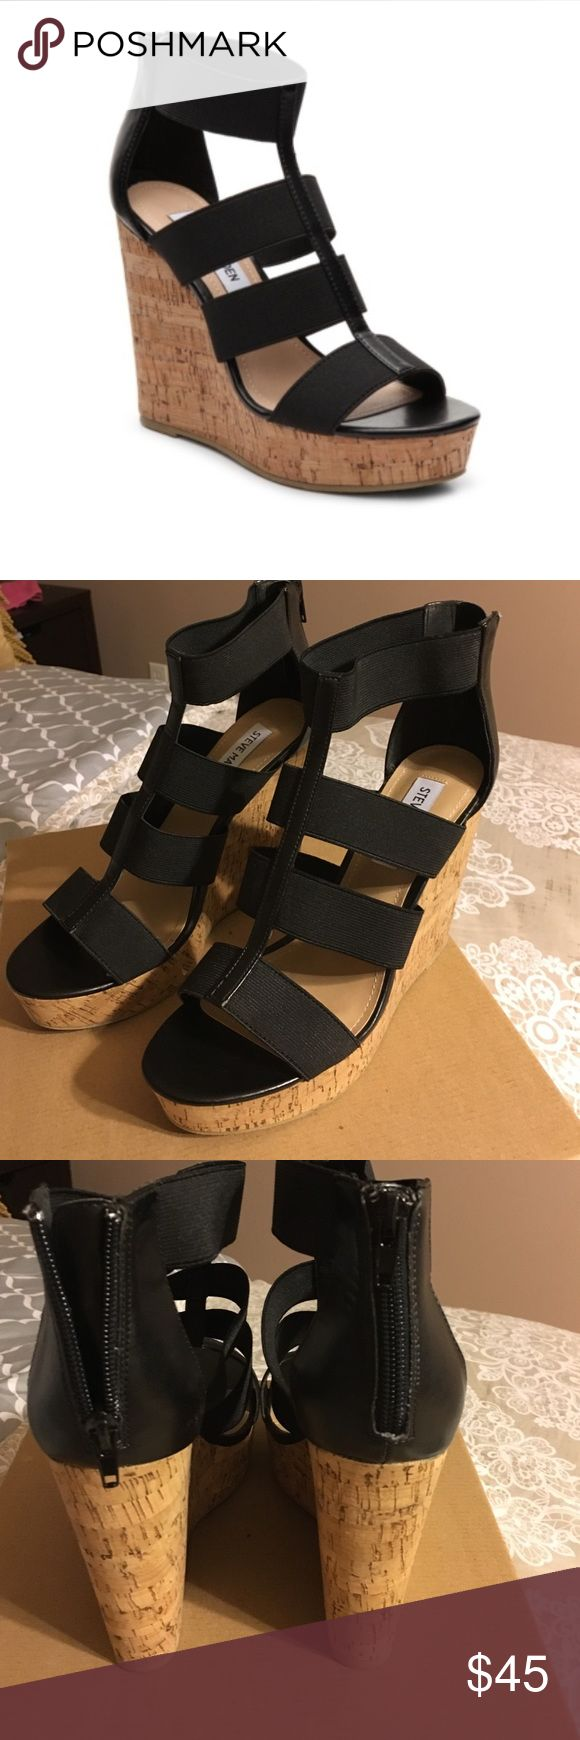 """Steve Madden black wedges The Selinah wedge sandal is a must-have addition to your sandal collection. This platform sandal from Steve Madden gives you a versatile look and the perfect touch to any casual outfit! Faux leather and elastic upper Back zipper closure 1½"""" platform, 4½"""" cork wedge heel Synthetic sole No box. Steve Madden Shoes Wedges"""